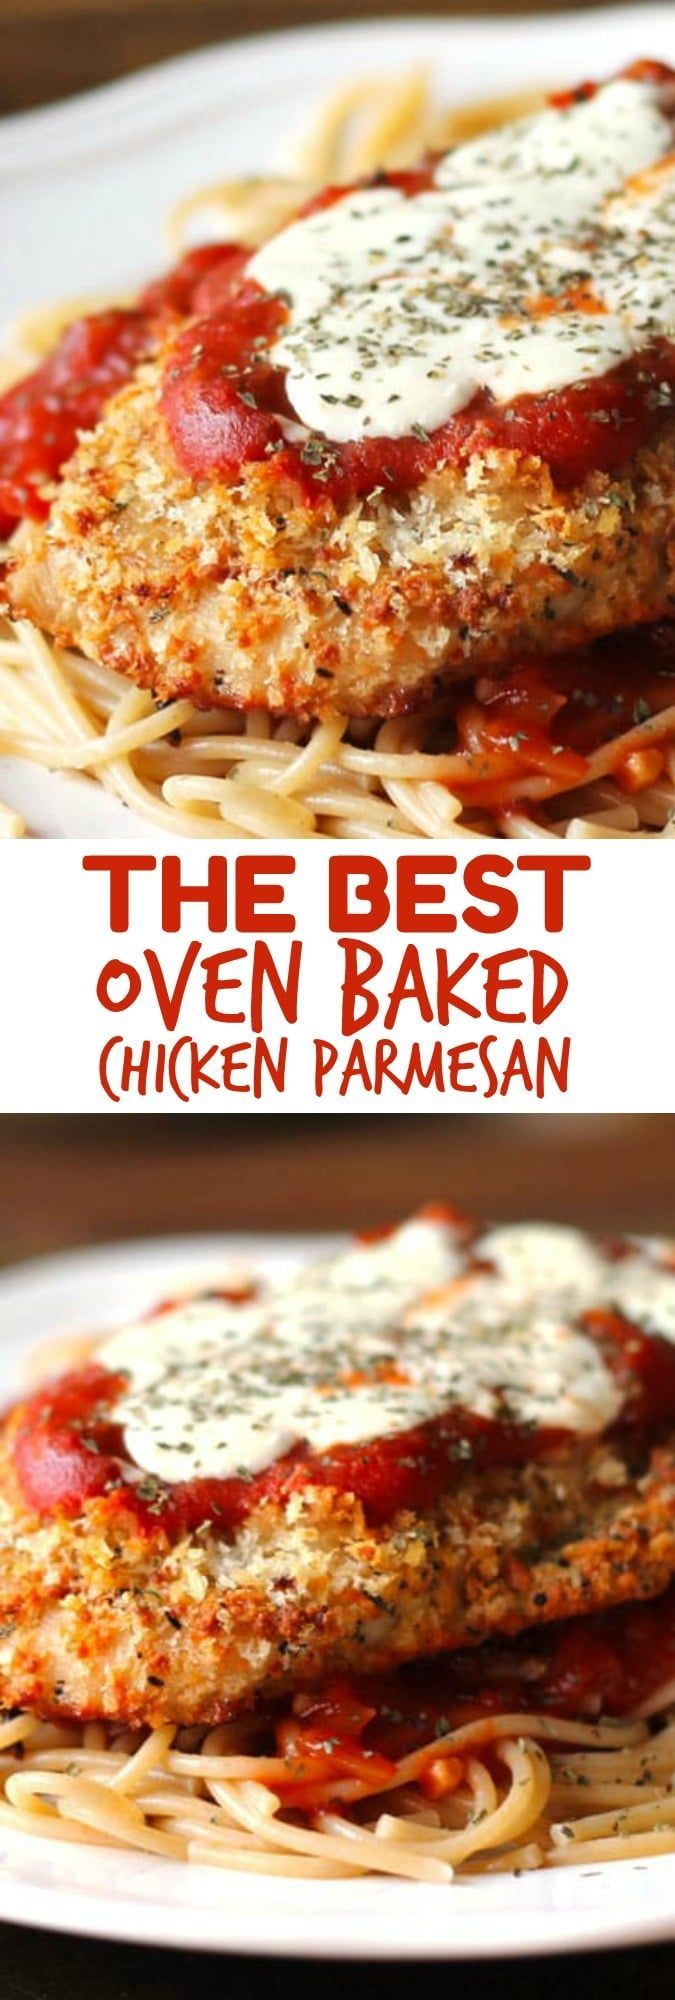 Oven-Baked Chicken Parmesan - Smile Sandwich